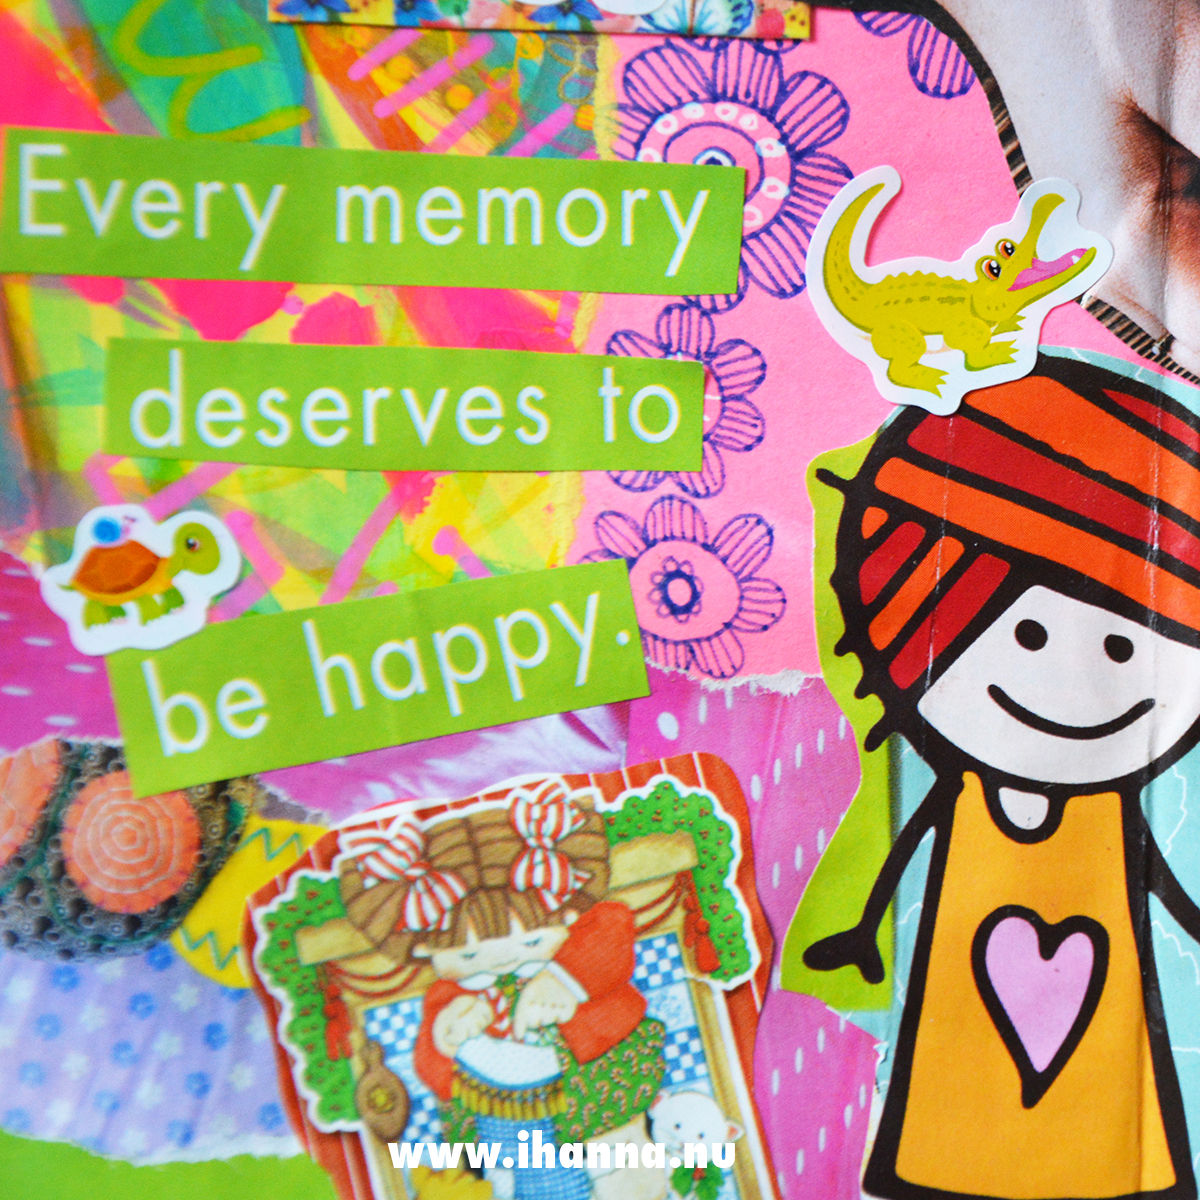 Quote Every memory deserves to be happy - on art journal collage page by iHanna